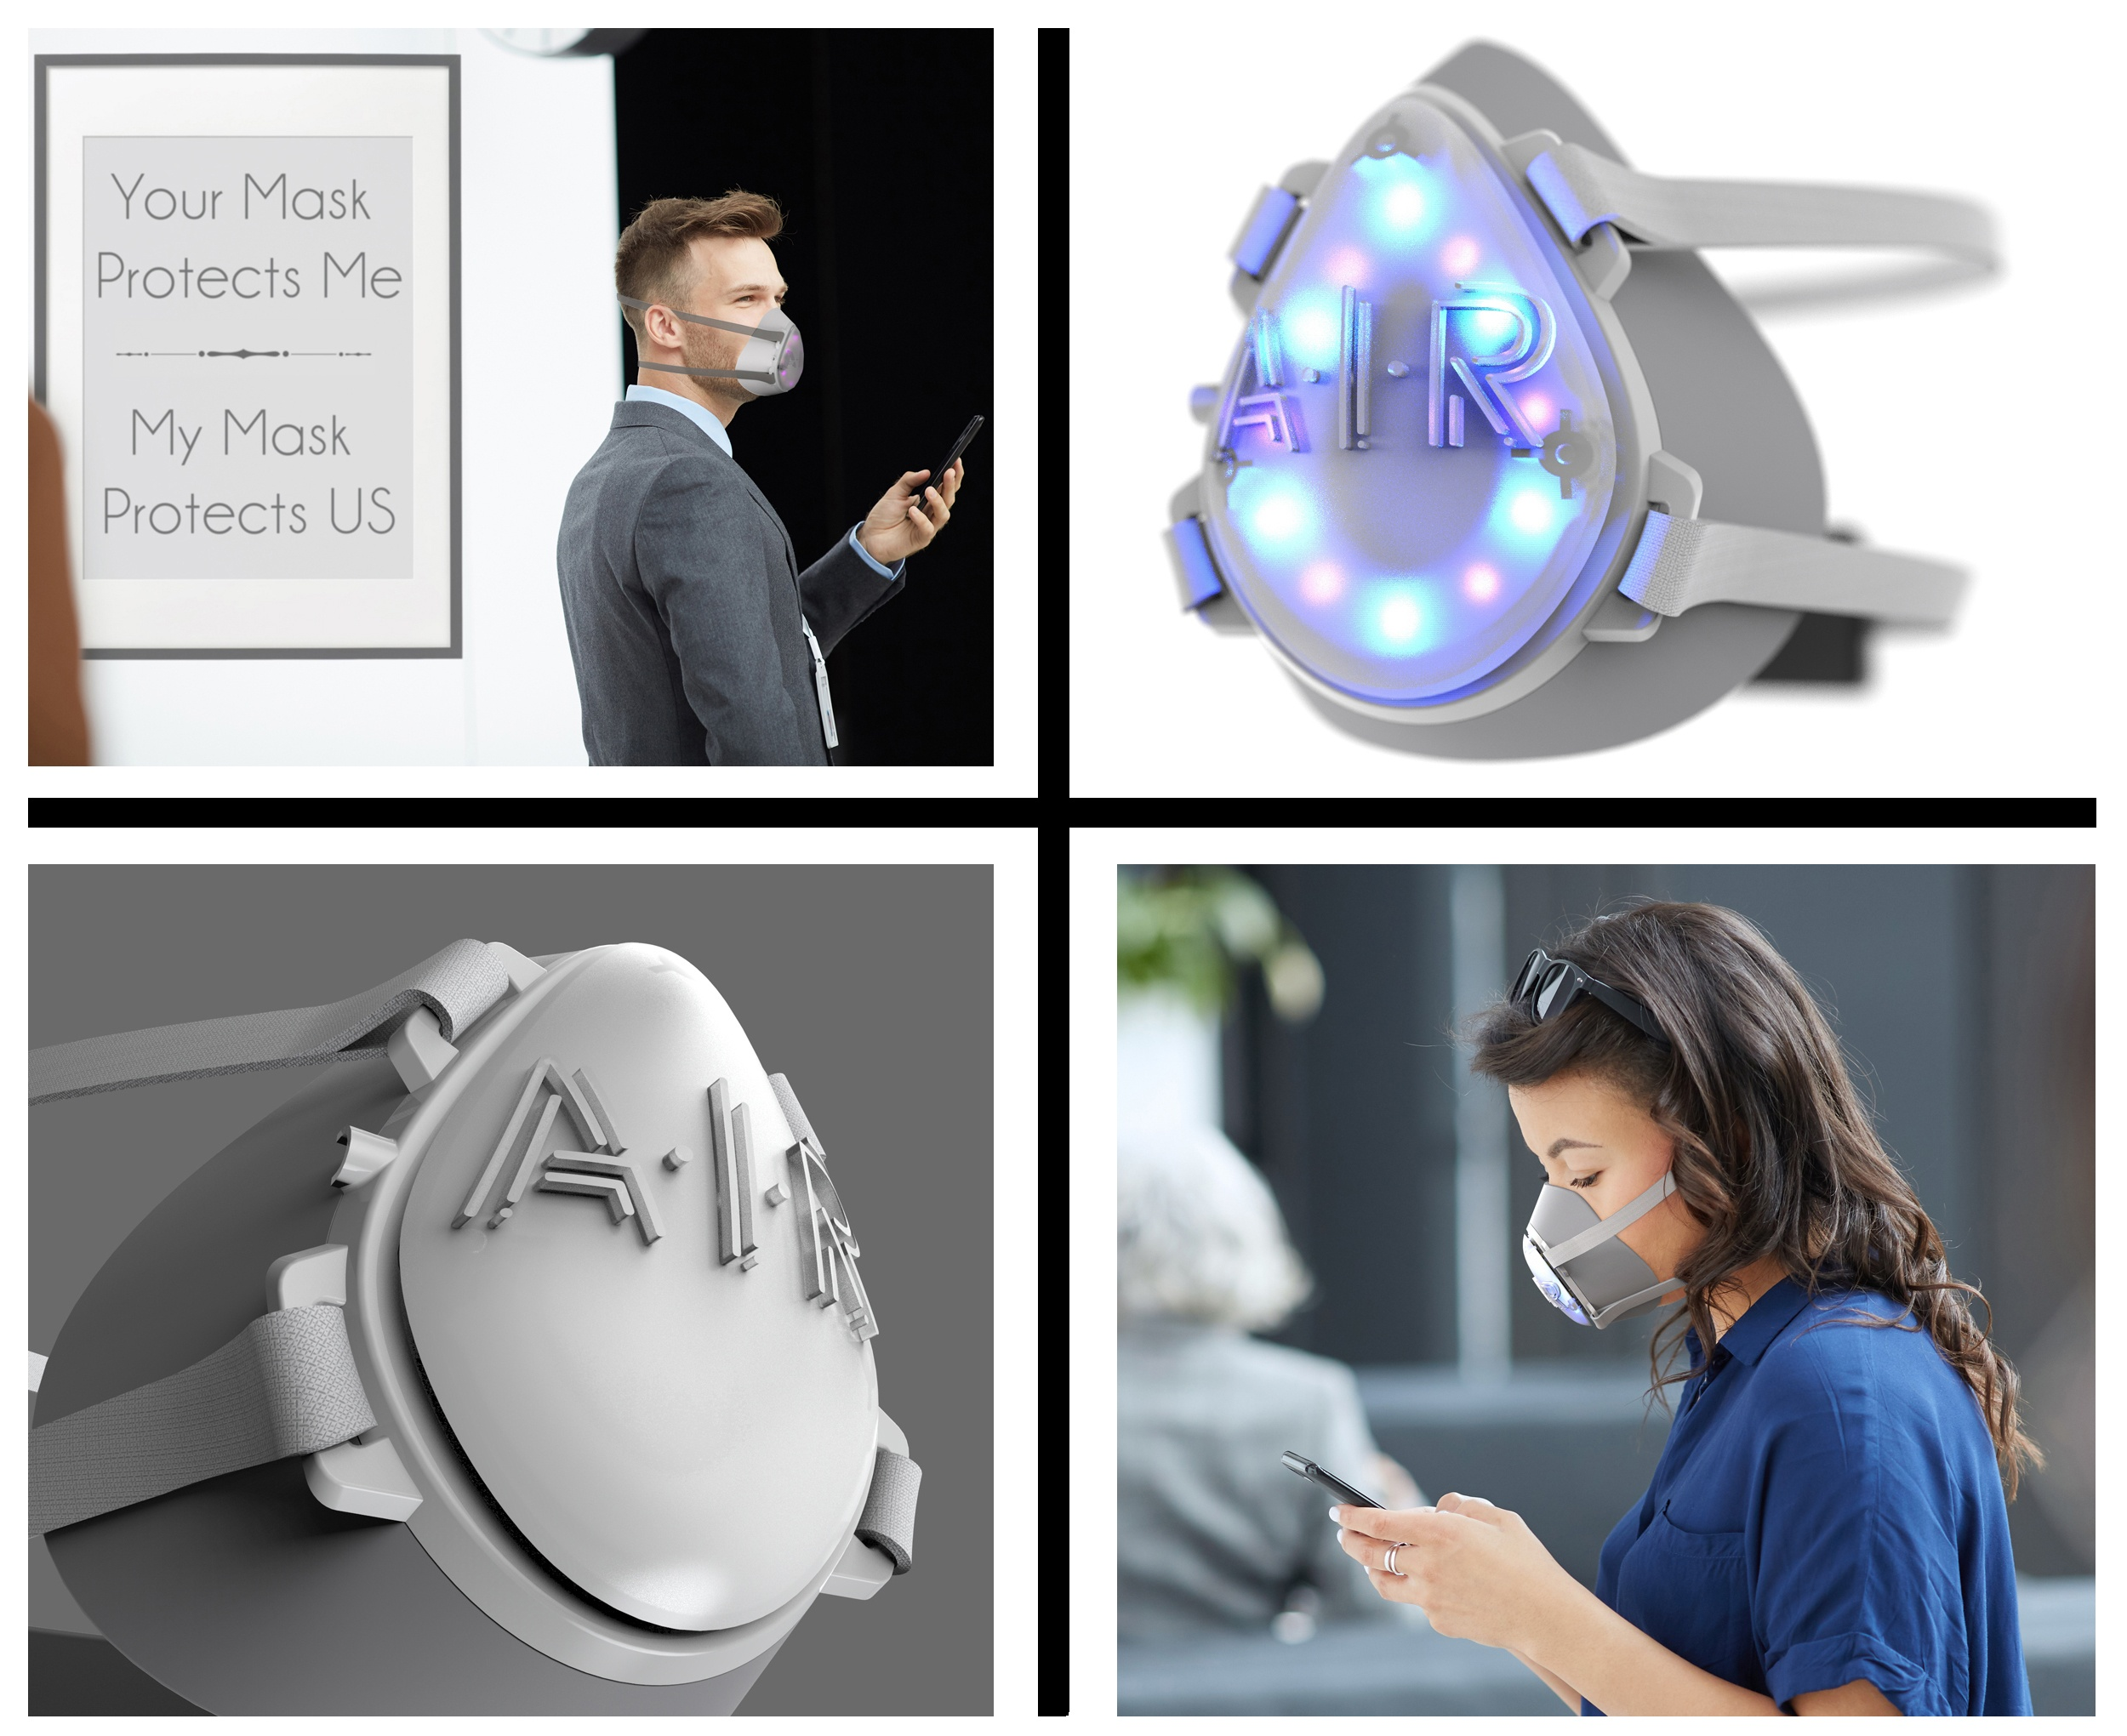 The Latest Weapon in the COVID-19 Battle - The A.I.R. Solo™ Virus Killing UV-Light Face Mask